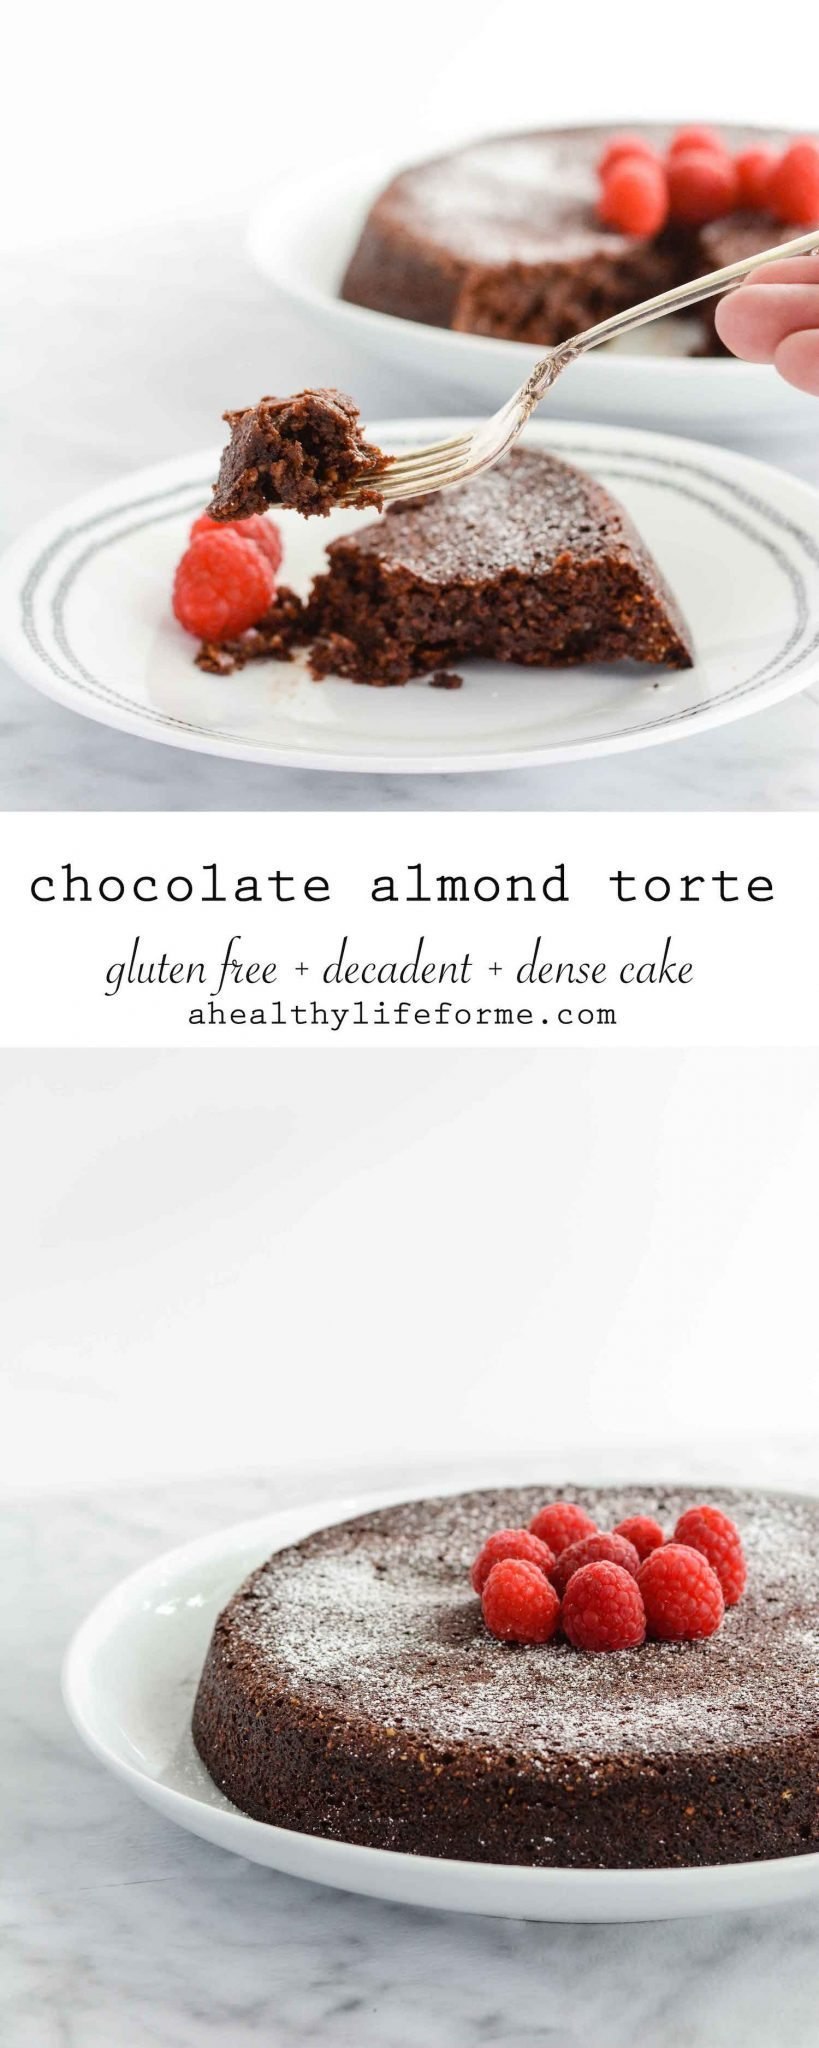 Chocolate Almond Torte A Healthy Life For Me